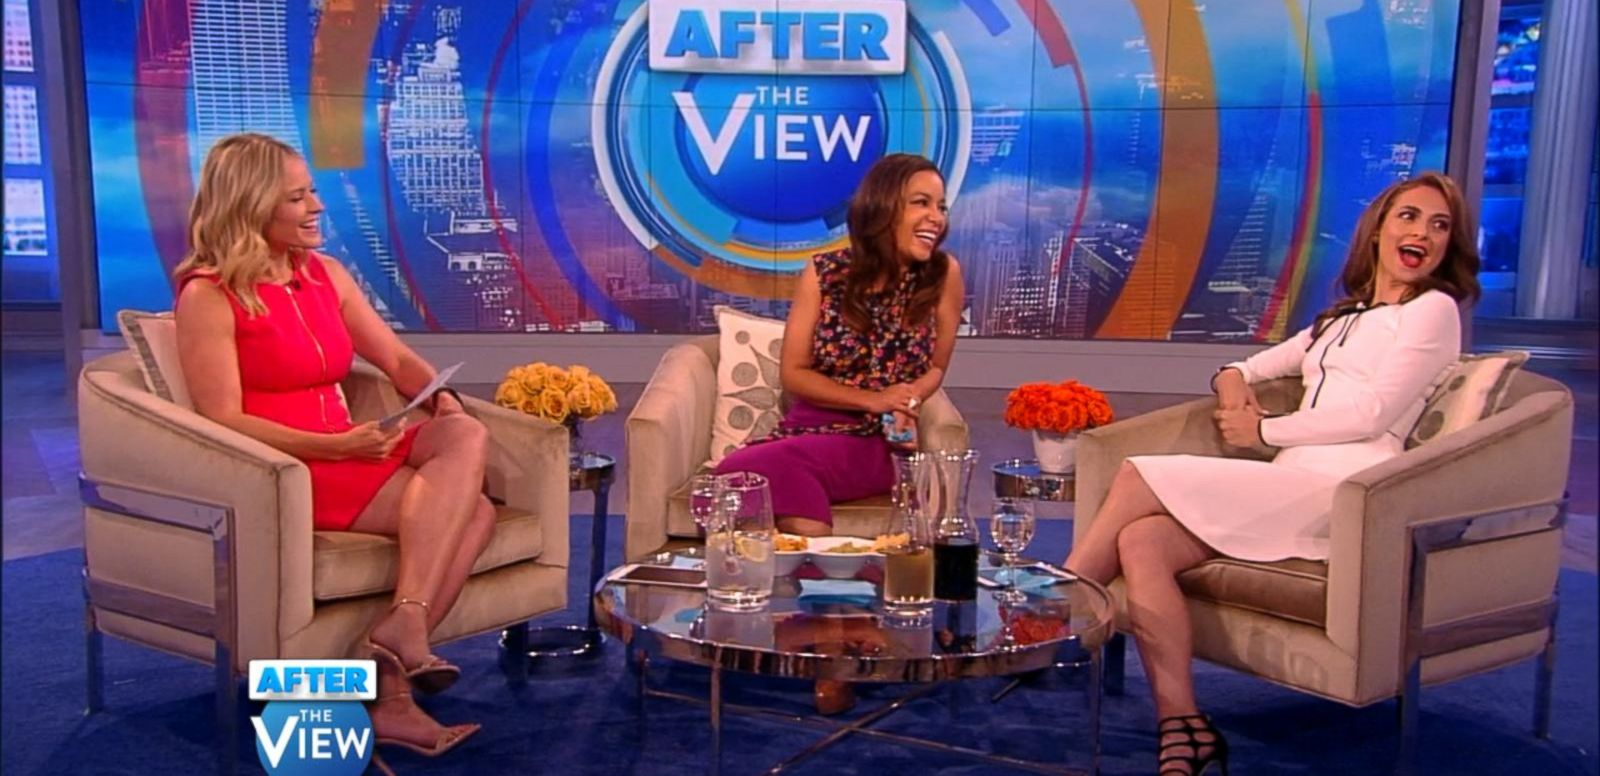 VIDEO: After The View: July 27, 2016